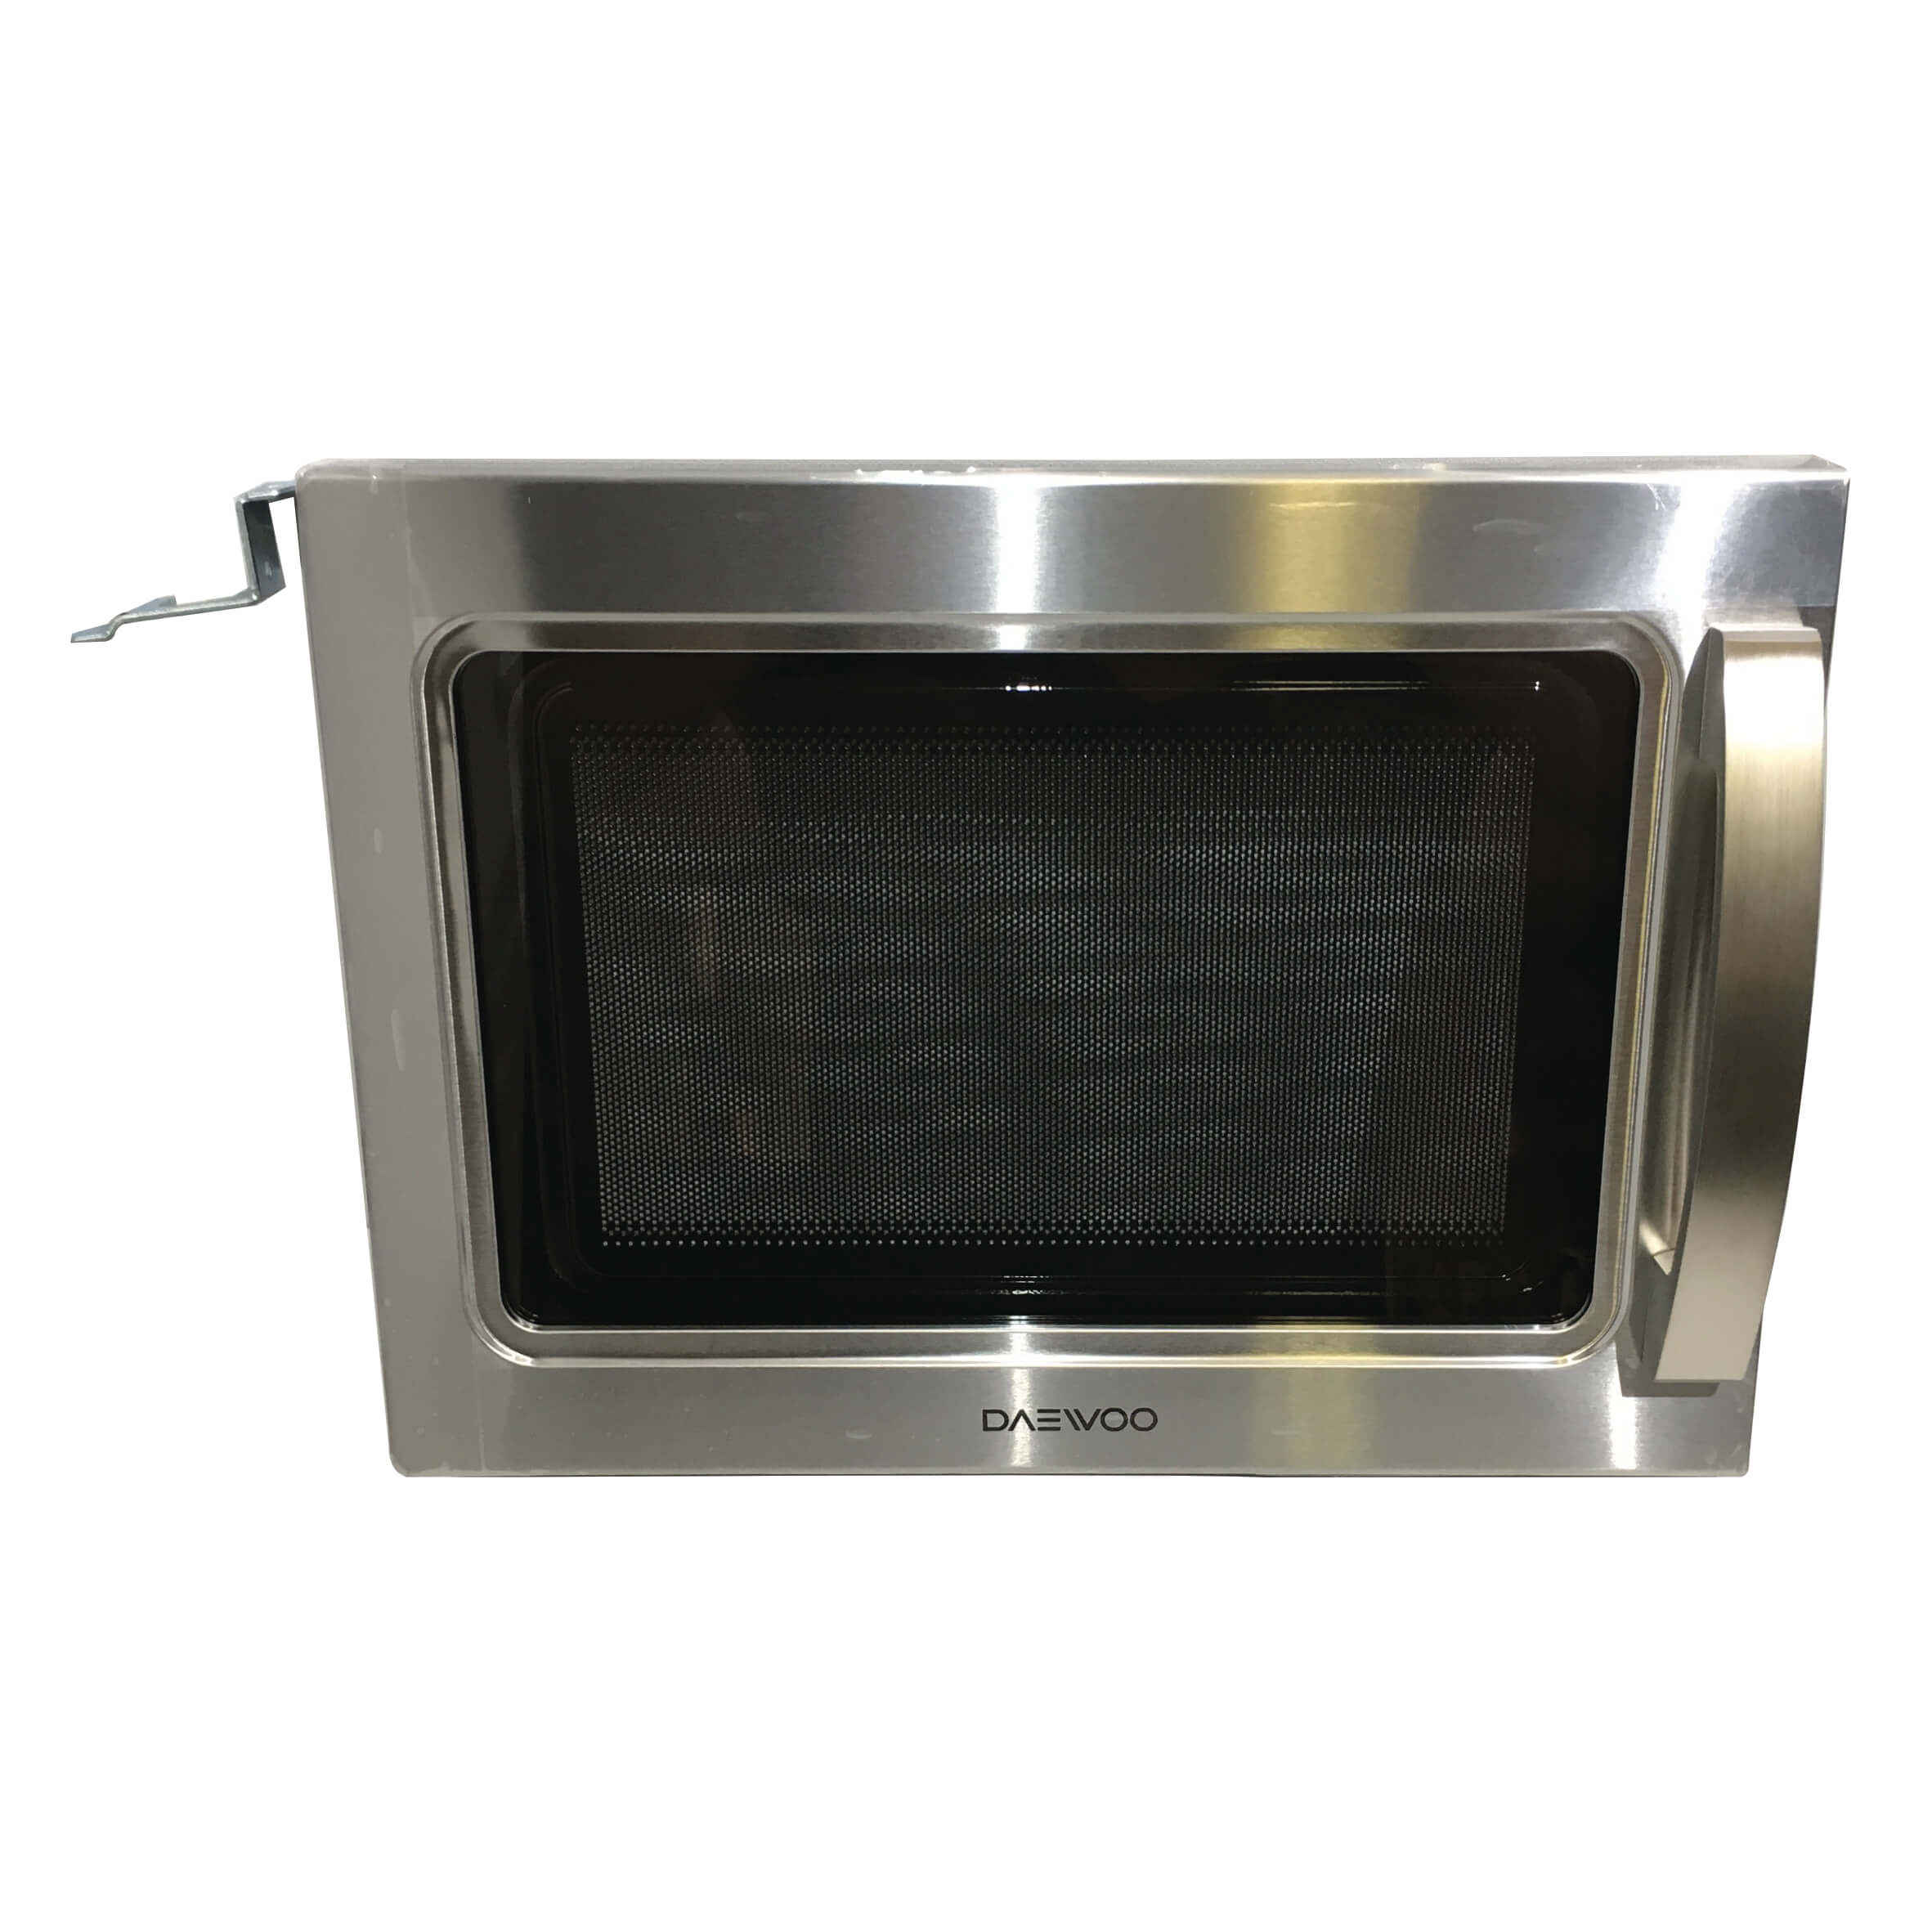 Door assembly  for Daewoo KOM9P11/KOM9M11 microwave ovens  [MSW.3511731000]